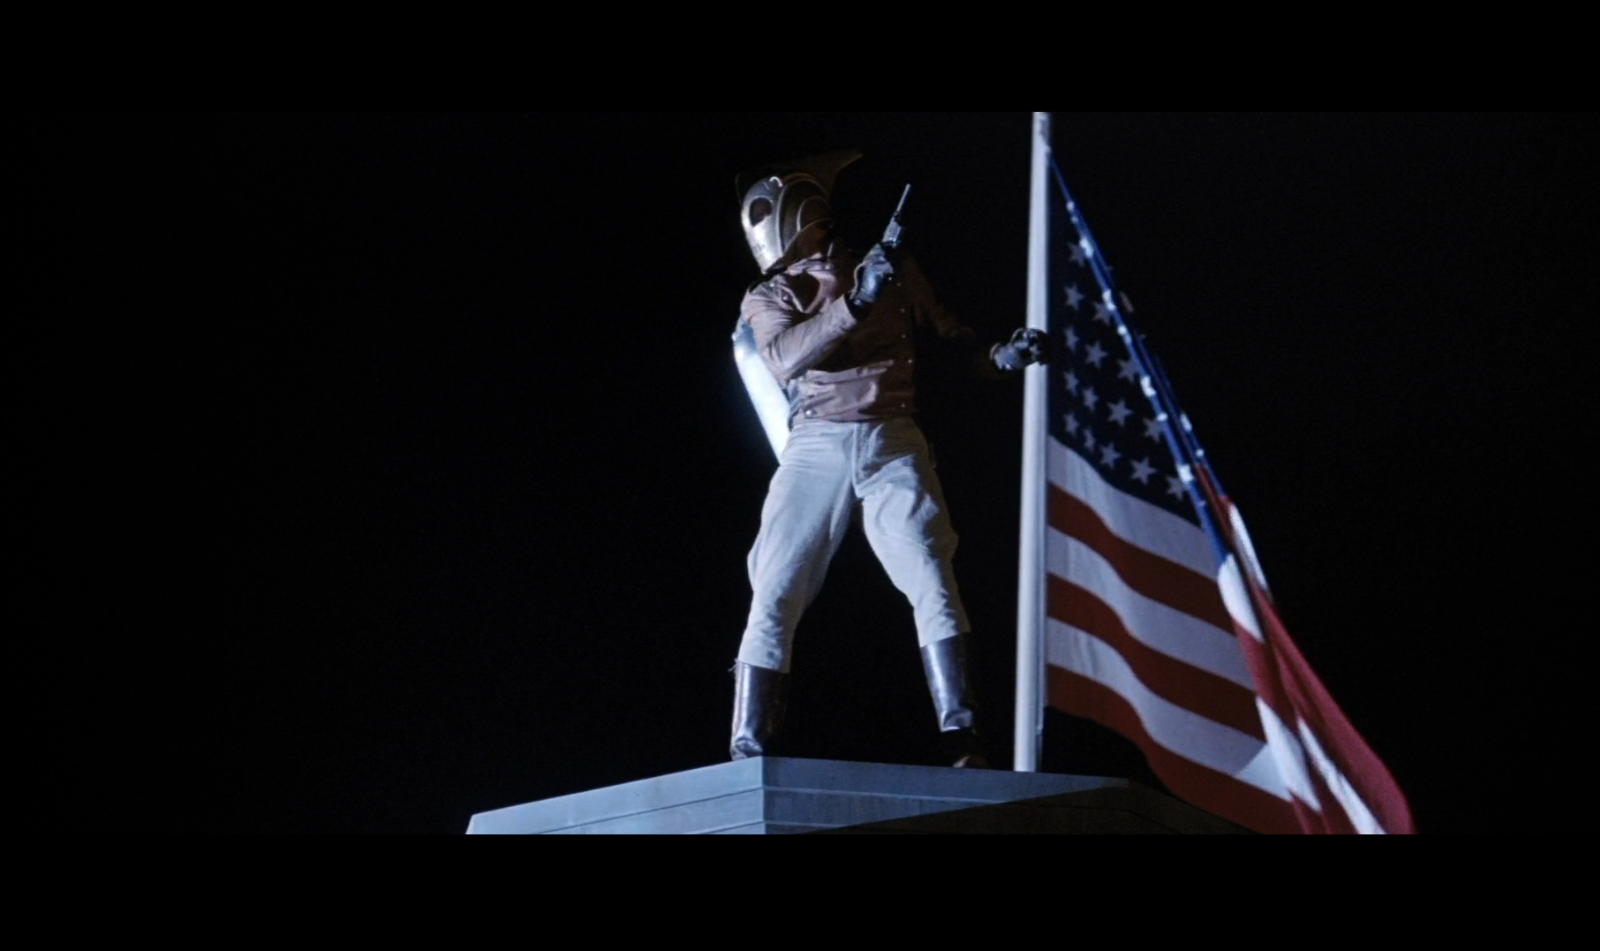 Has to be one of the most iconic shots in the movie.